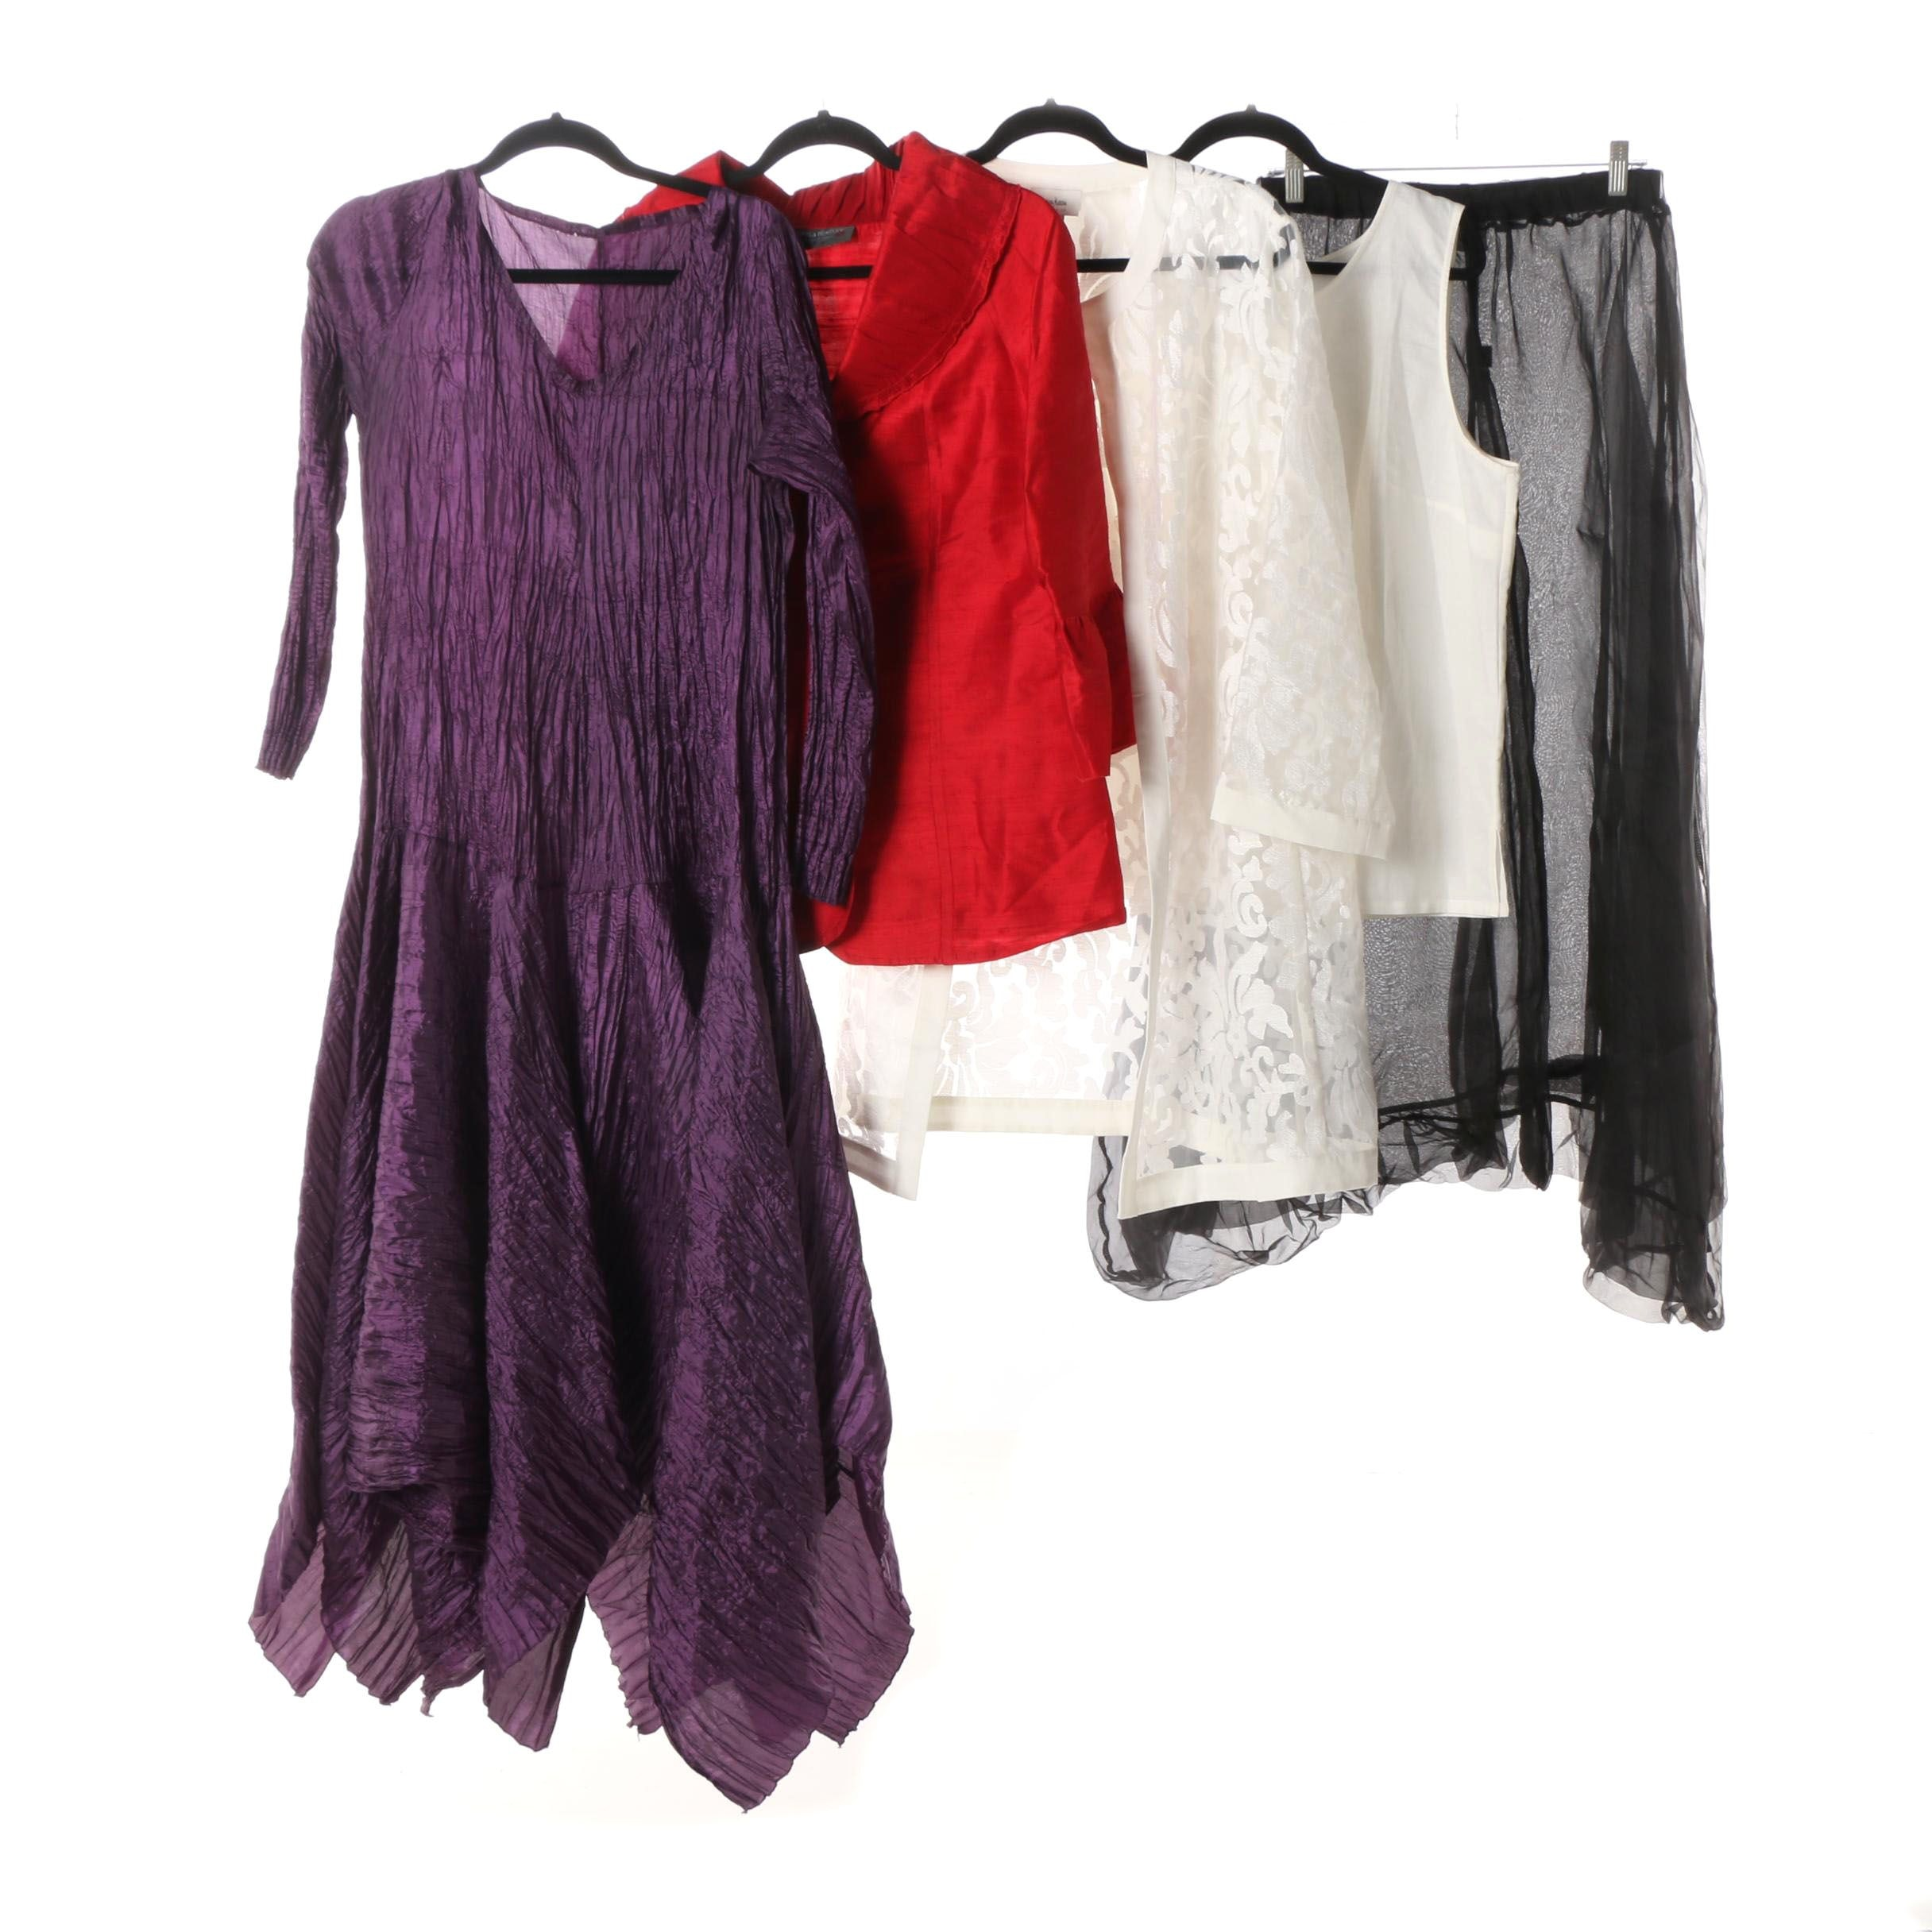 Women S Silk Evening Wear With Neiman Marcus Exclusive And Others Ebth